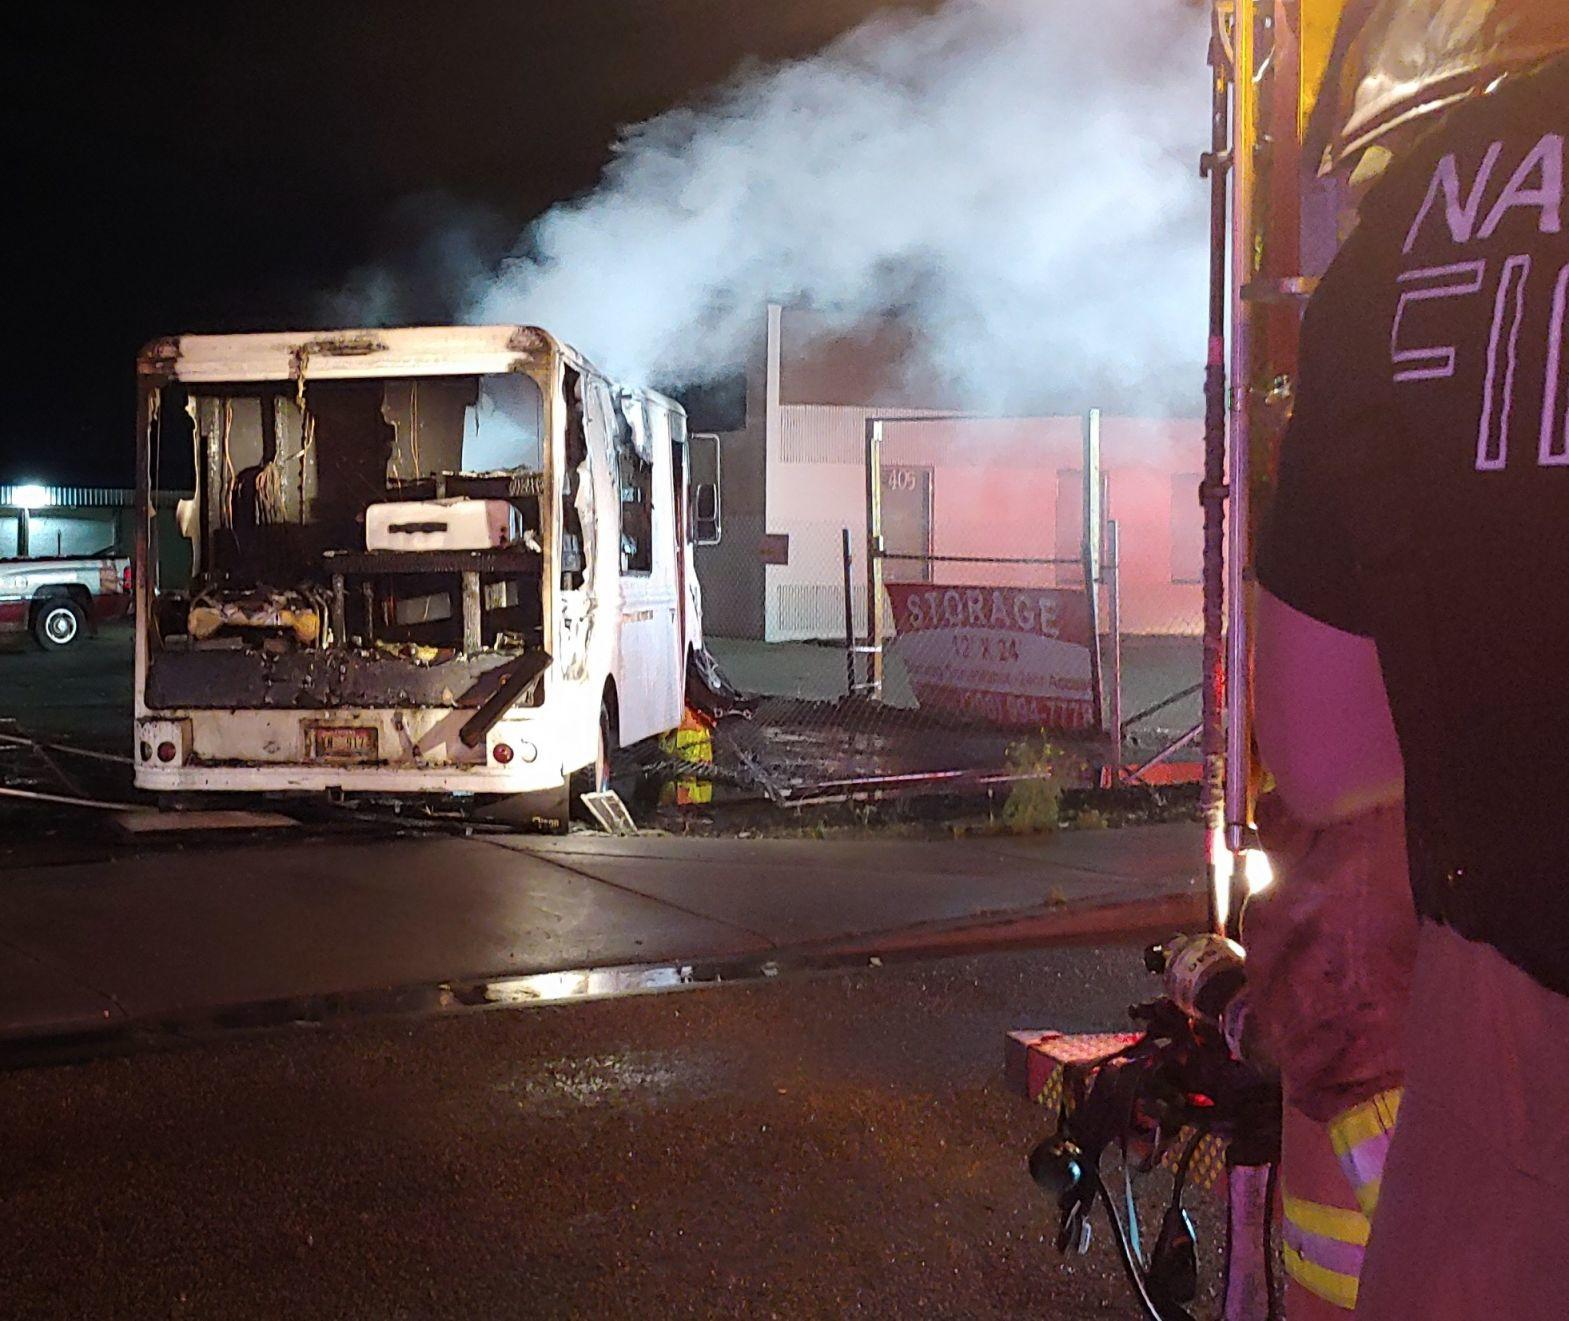 Idaho food truck destroyed in explosion Friday, owner injured